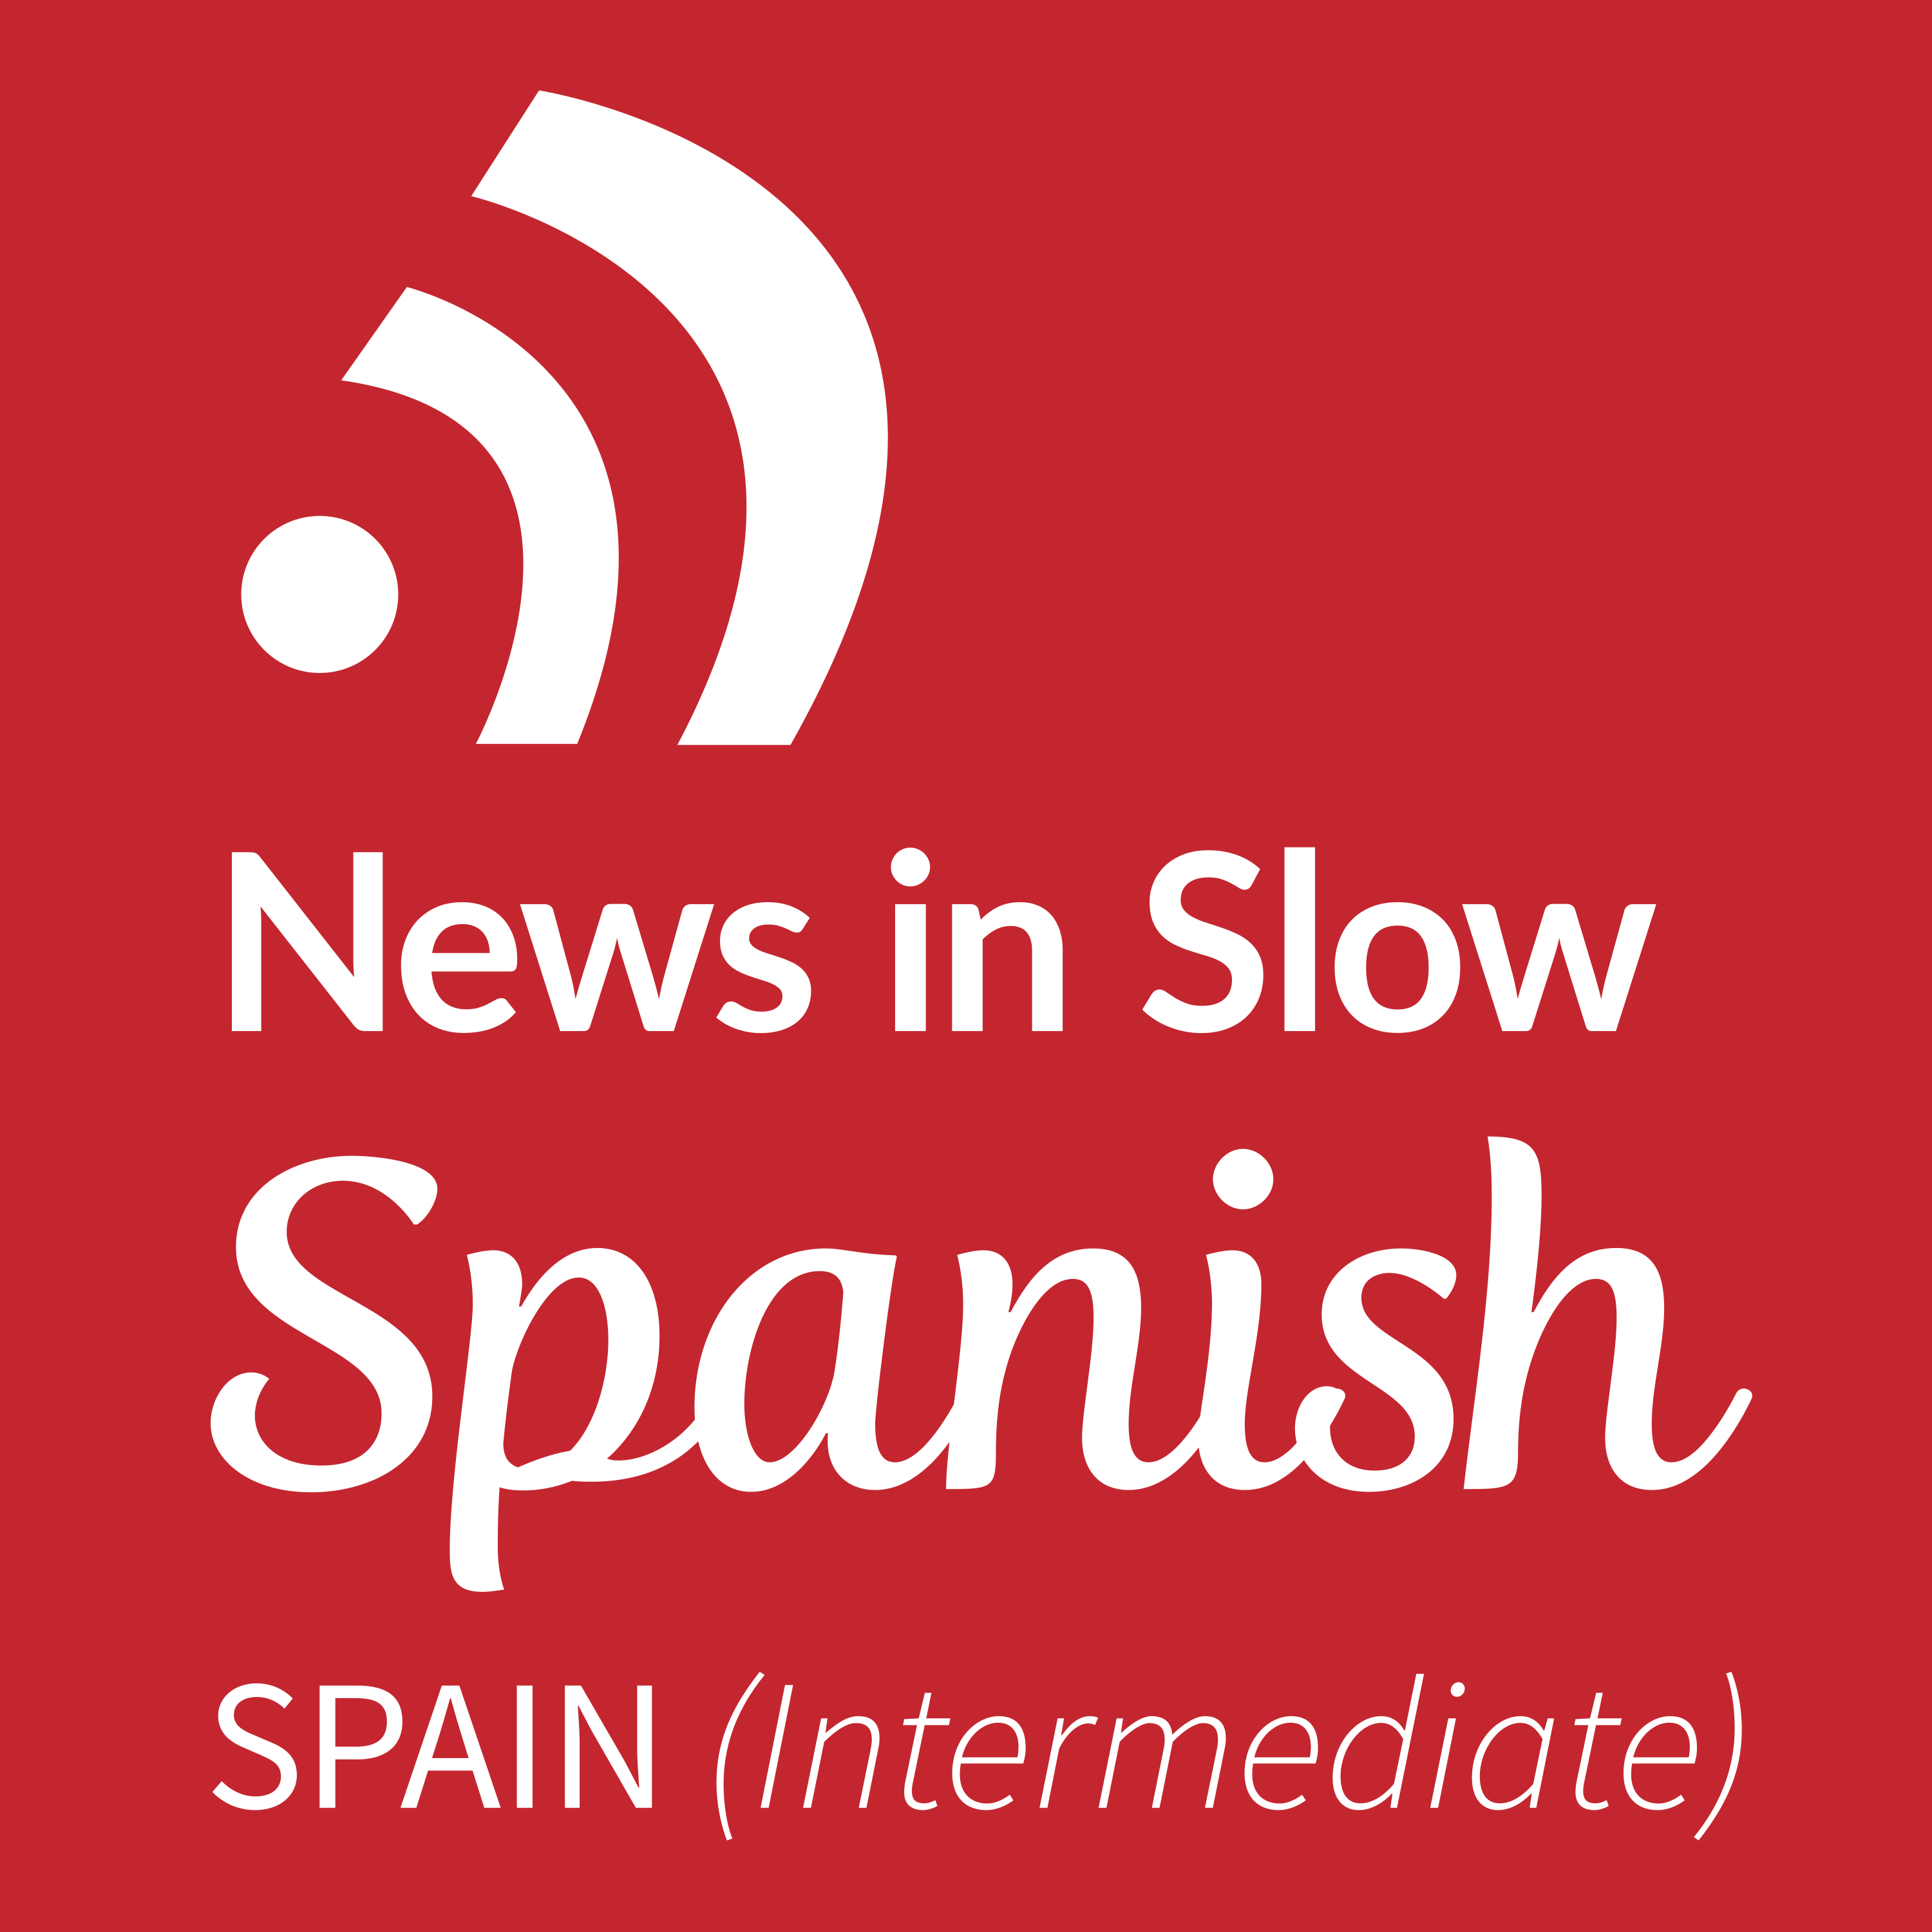 News in Slow Spanish - #411 - Weekly language learning show with discussion of current events